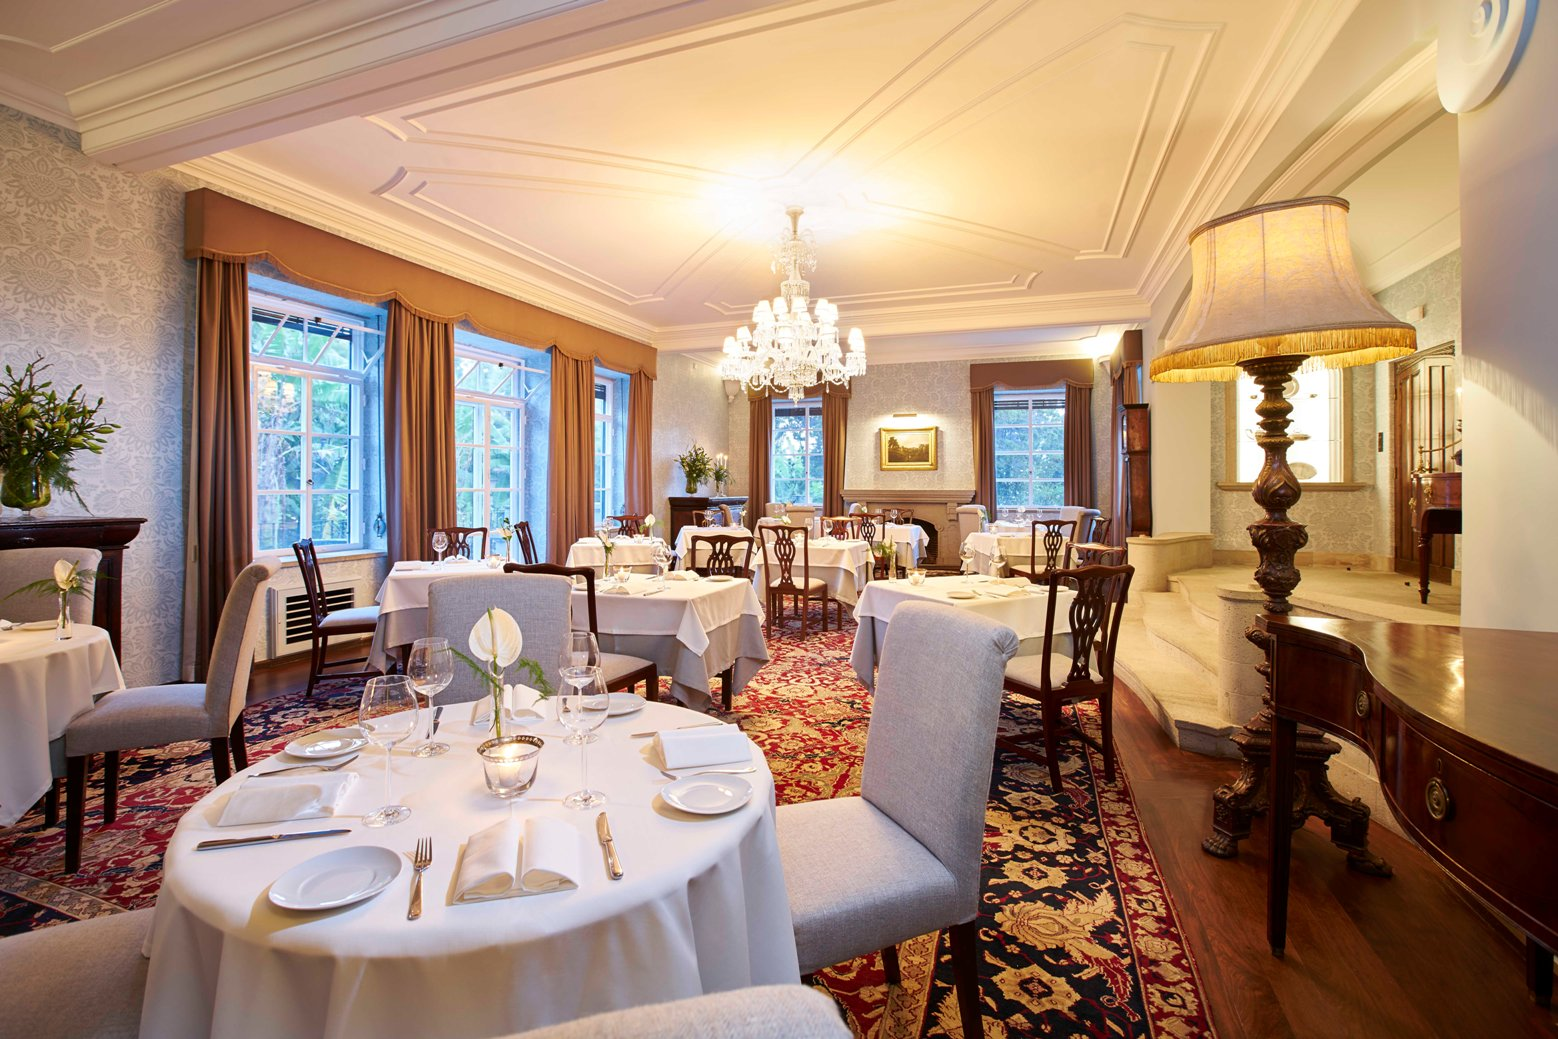 The Dining Room Restaurant